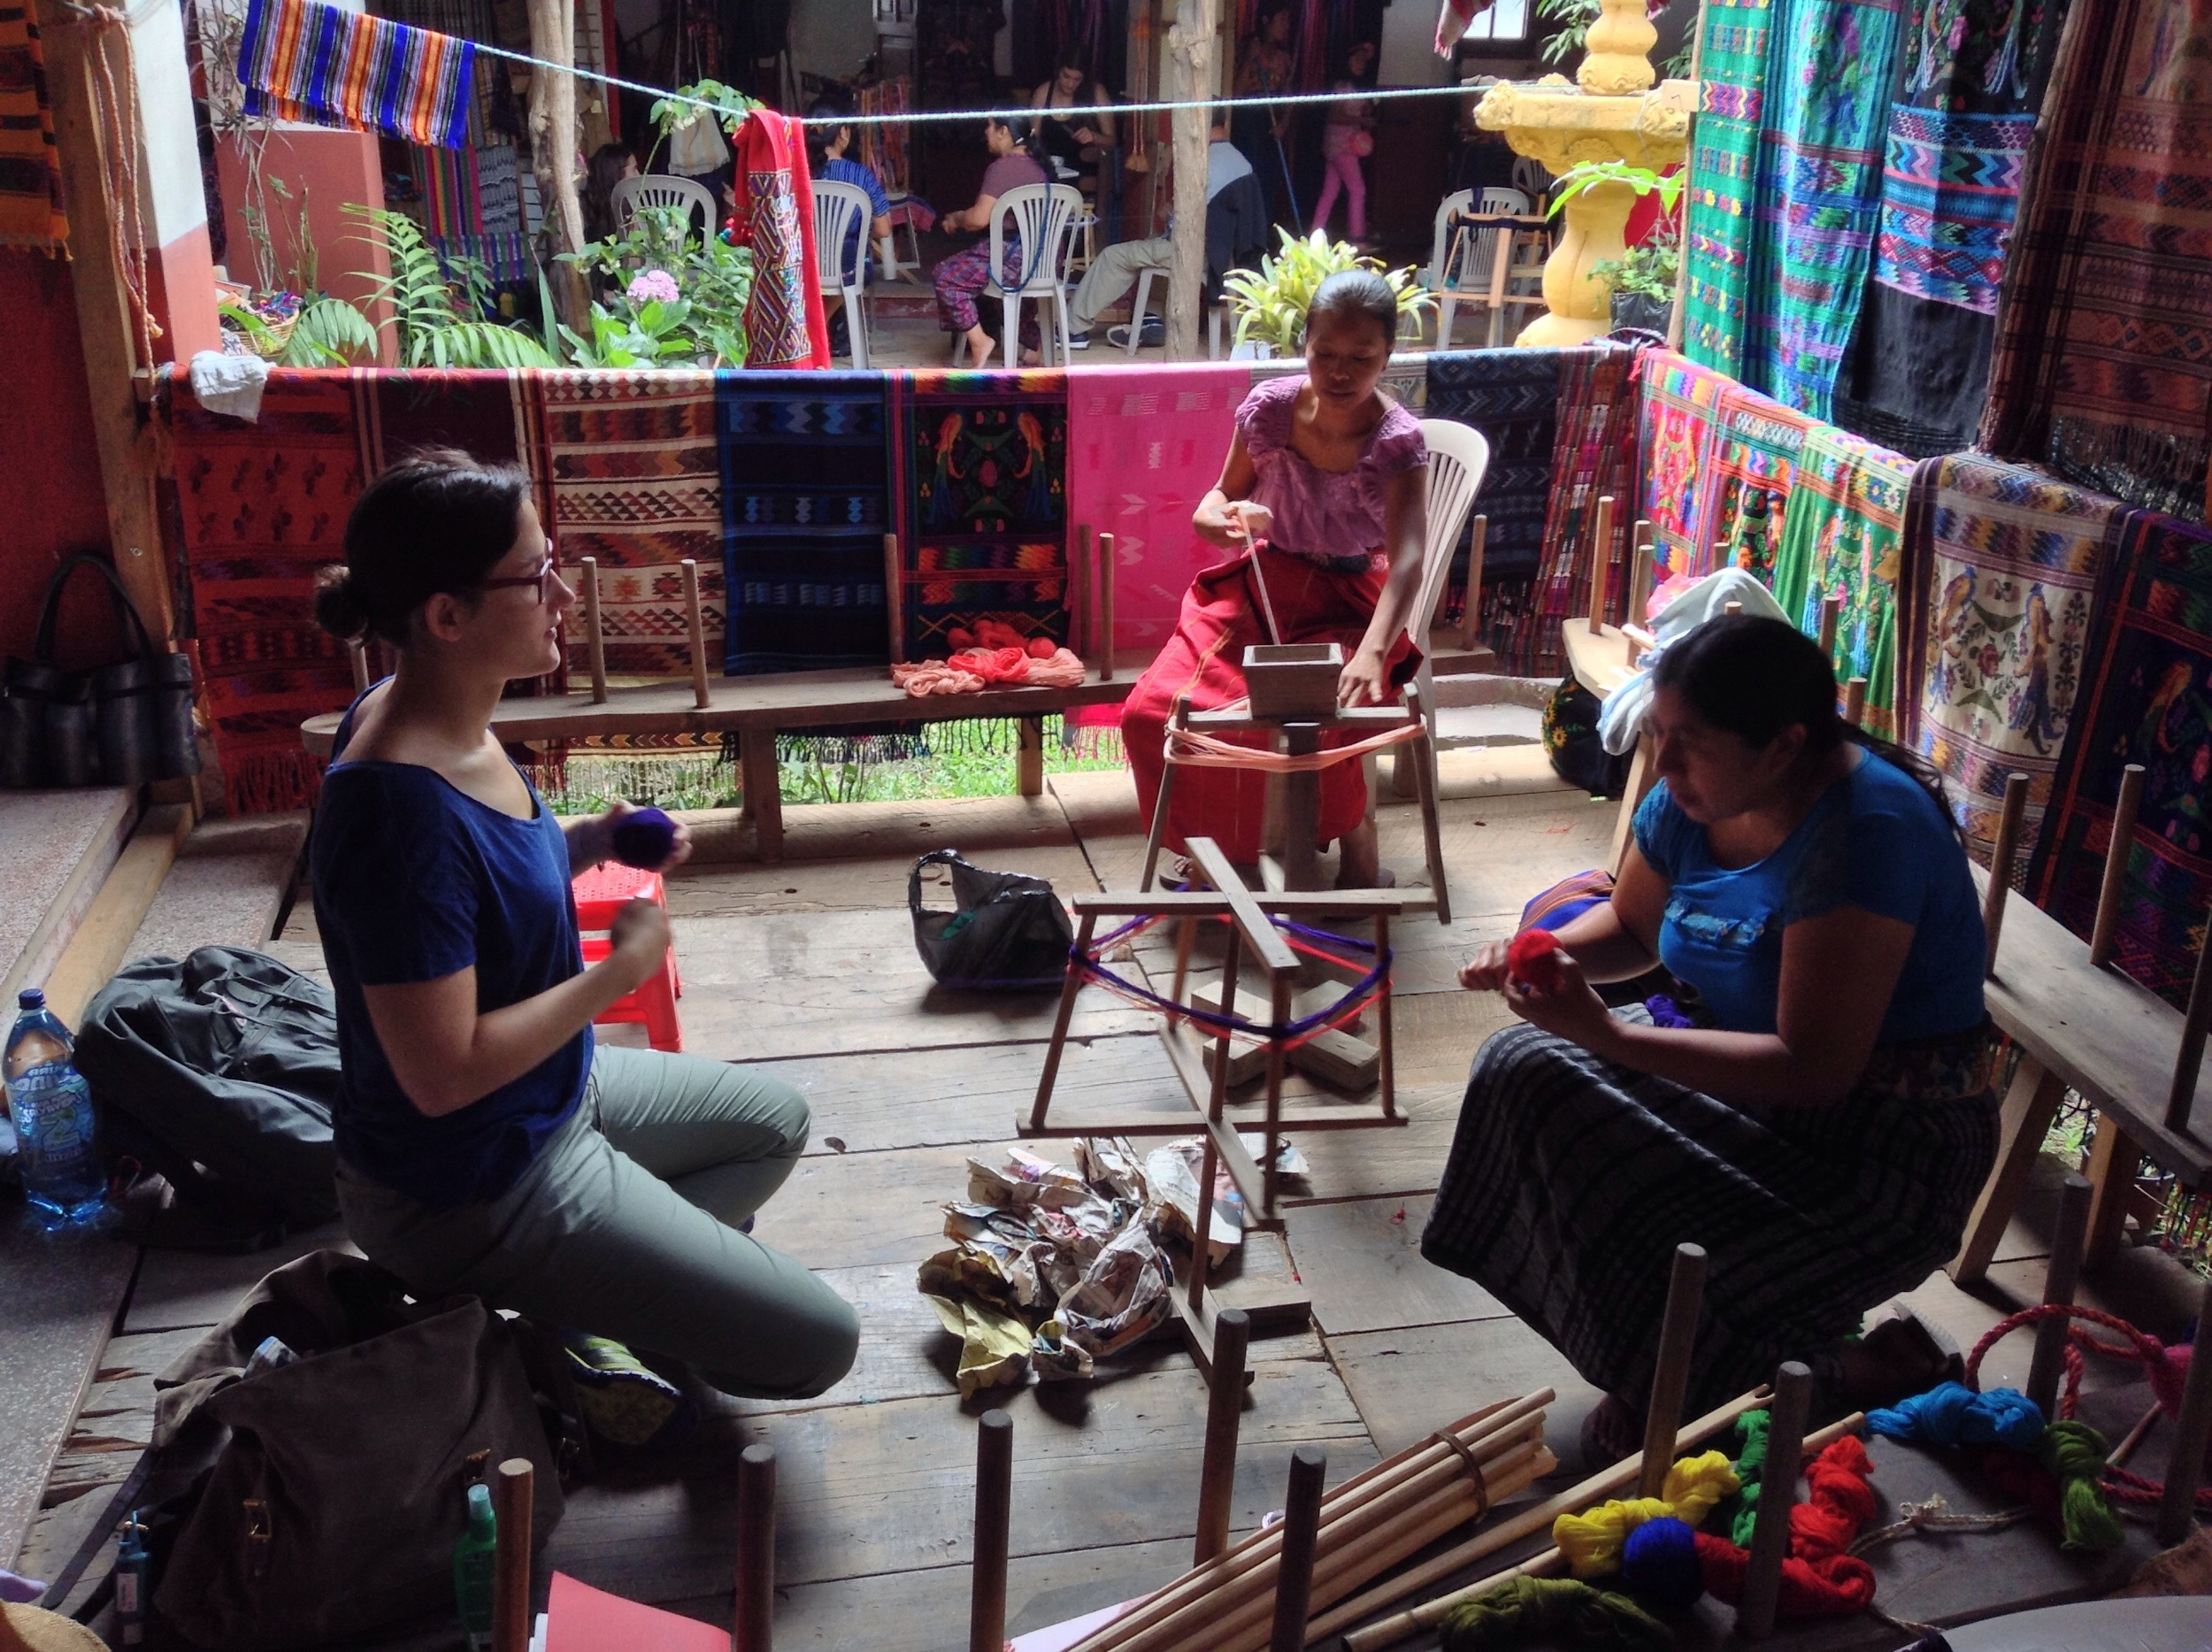 Part of the process of weaving involves unraveling skeins of thread and rolling them into balls.